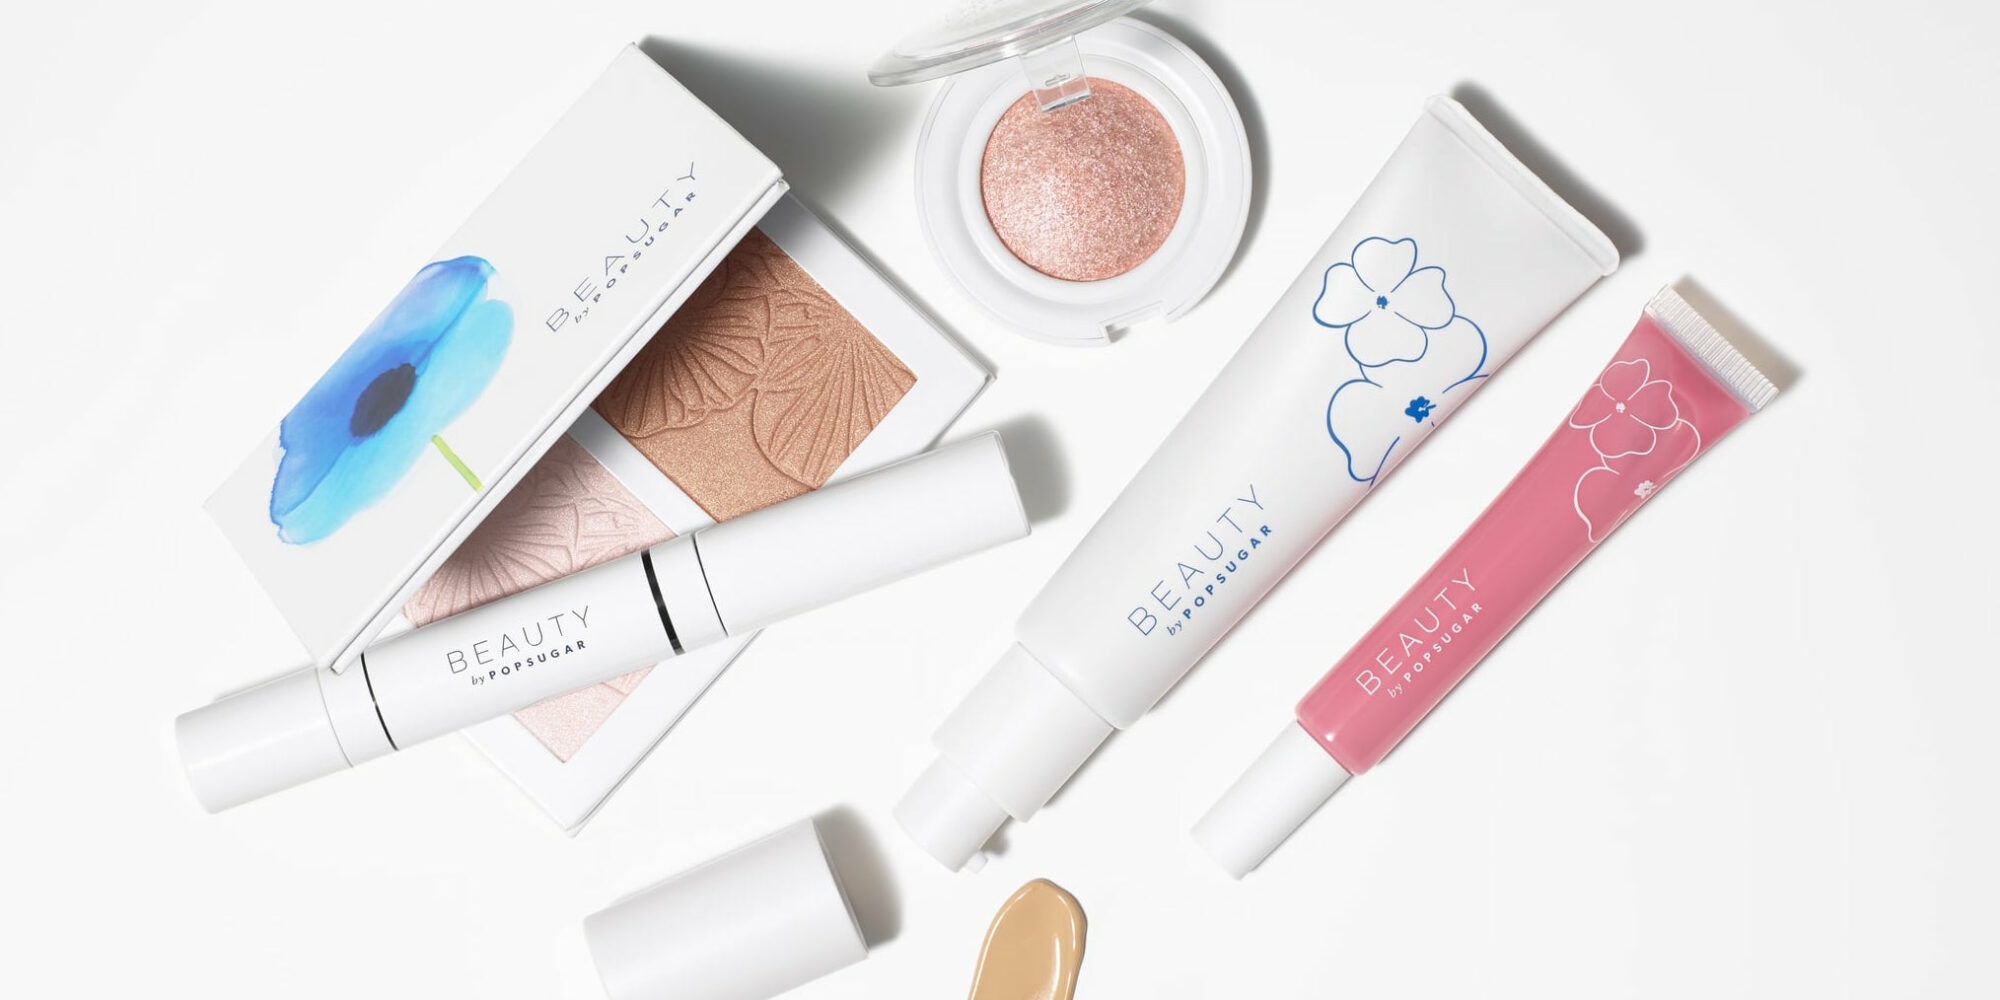 Beauty By PopSugar Producer Files For Chapter 7 Bankruptcy